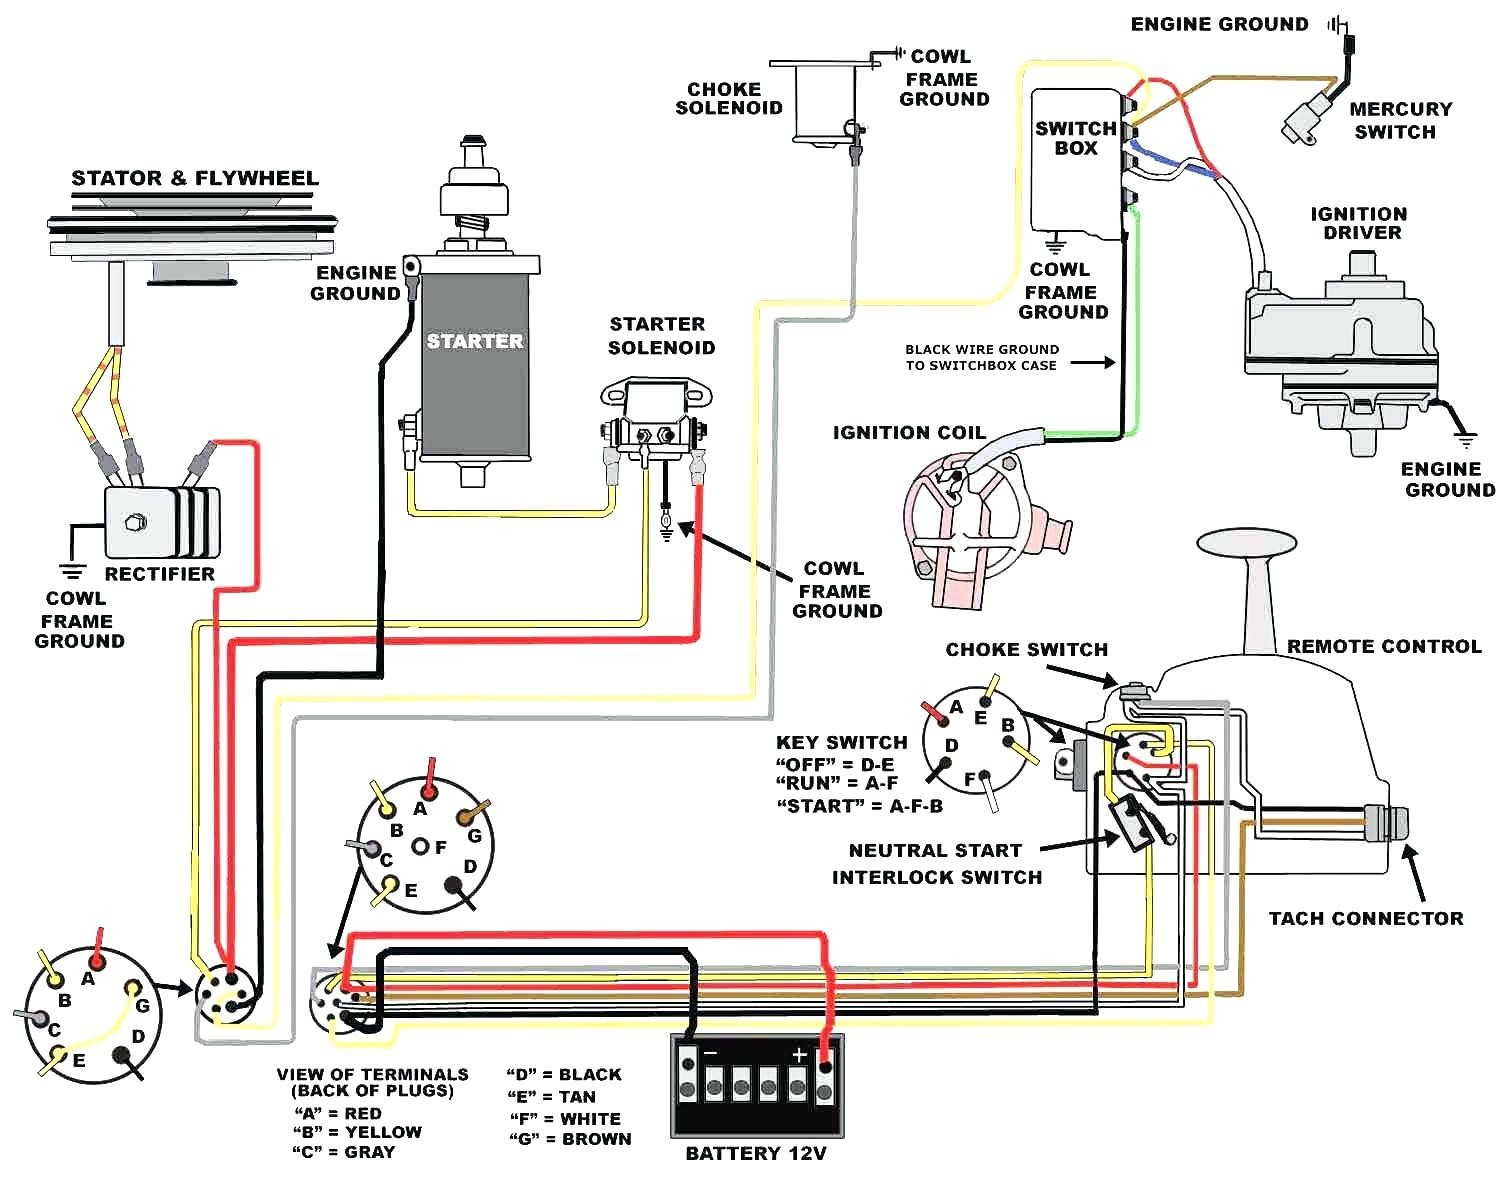 Random Ignition Switch Wiring Diagram - Panoramabypatysesma - Ignition Switch Wiring Diagram